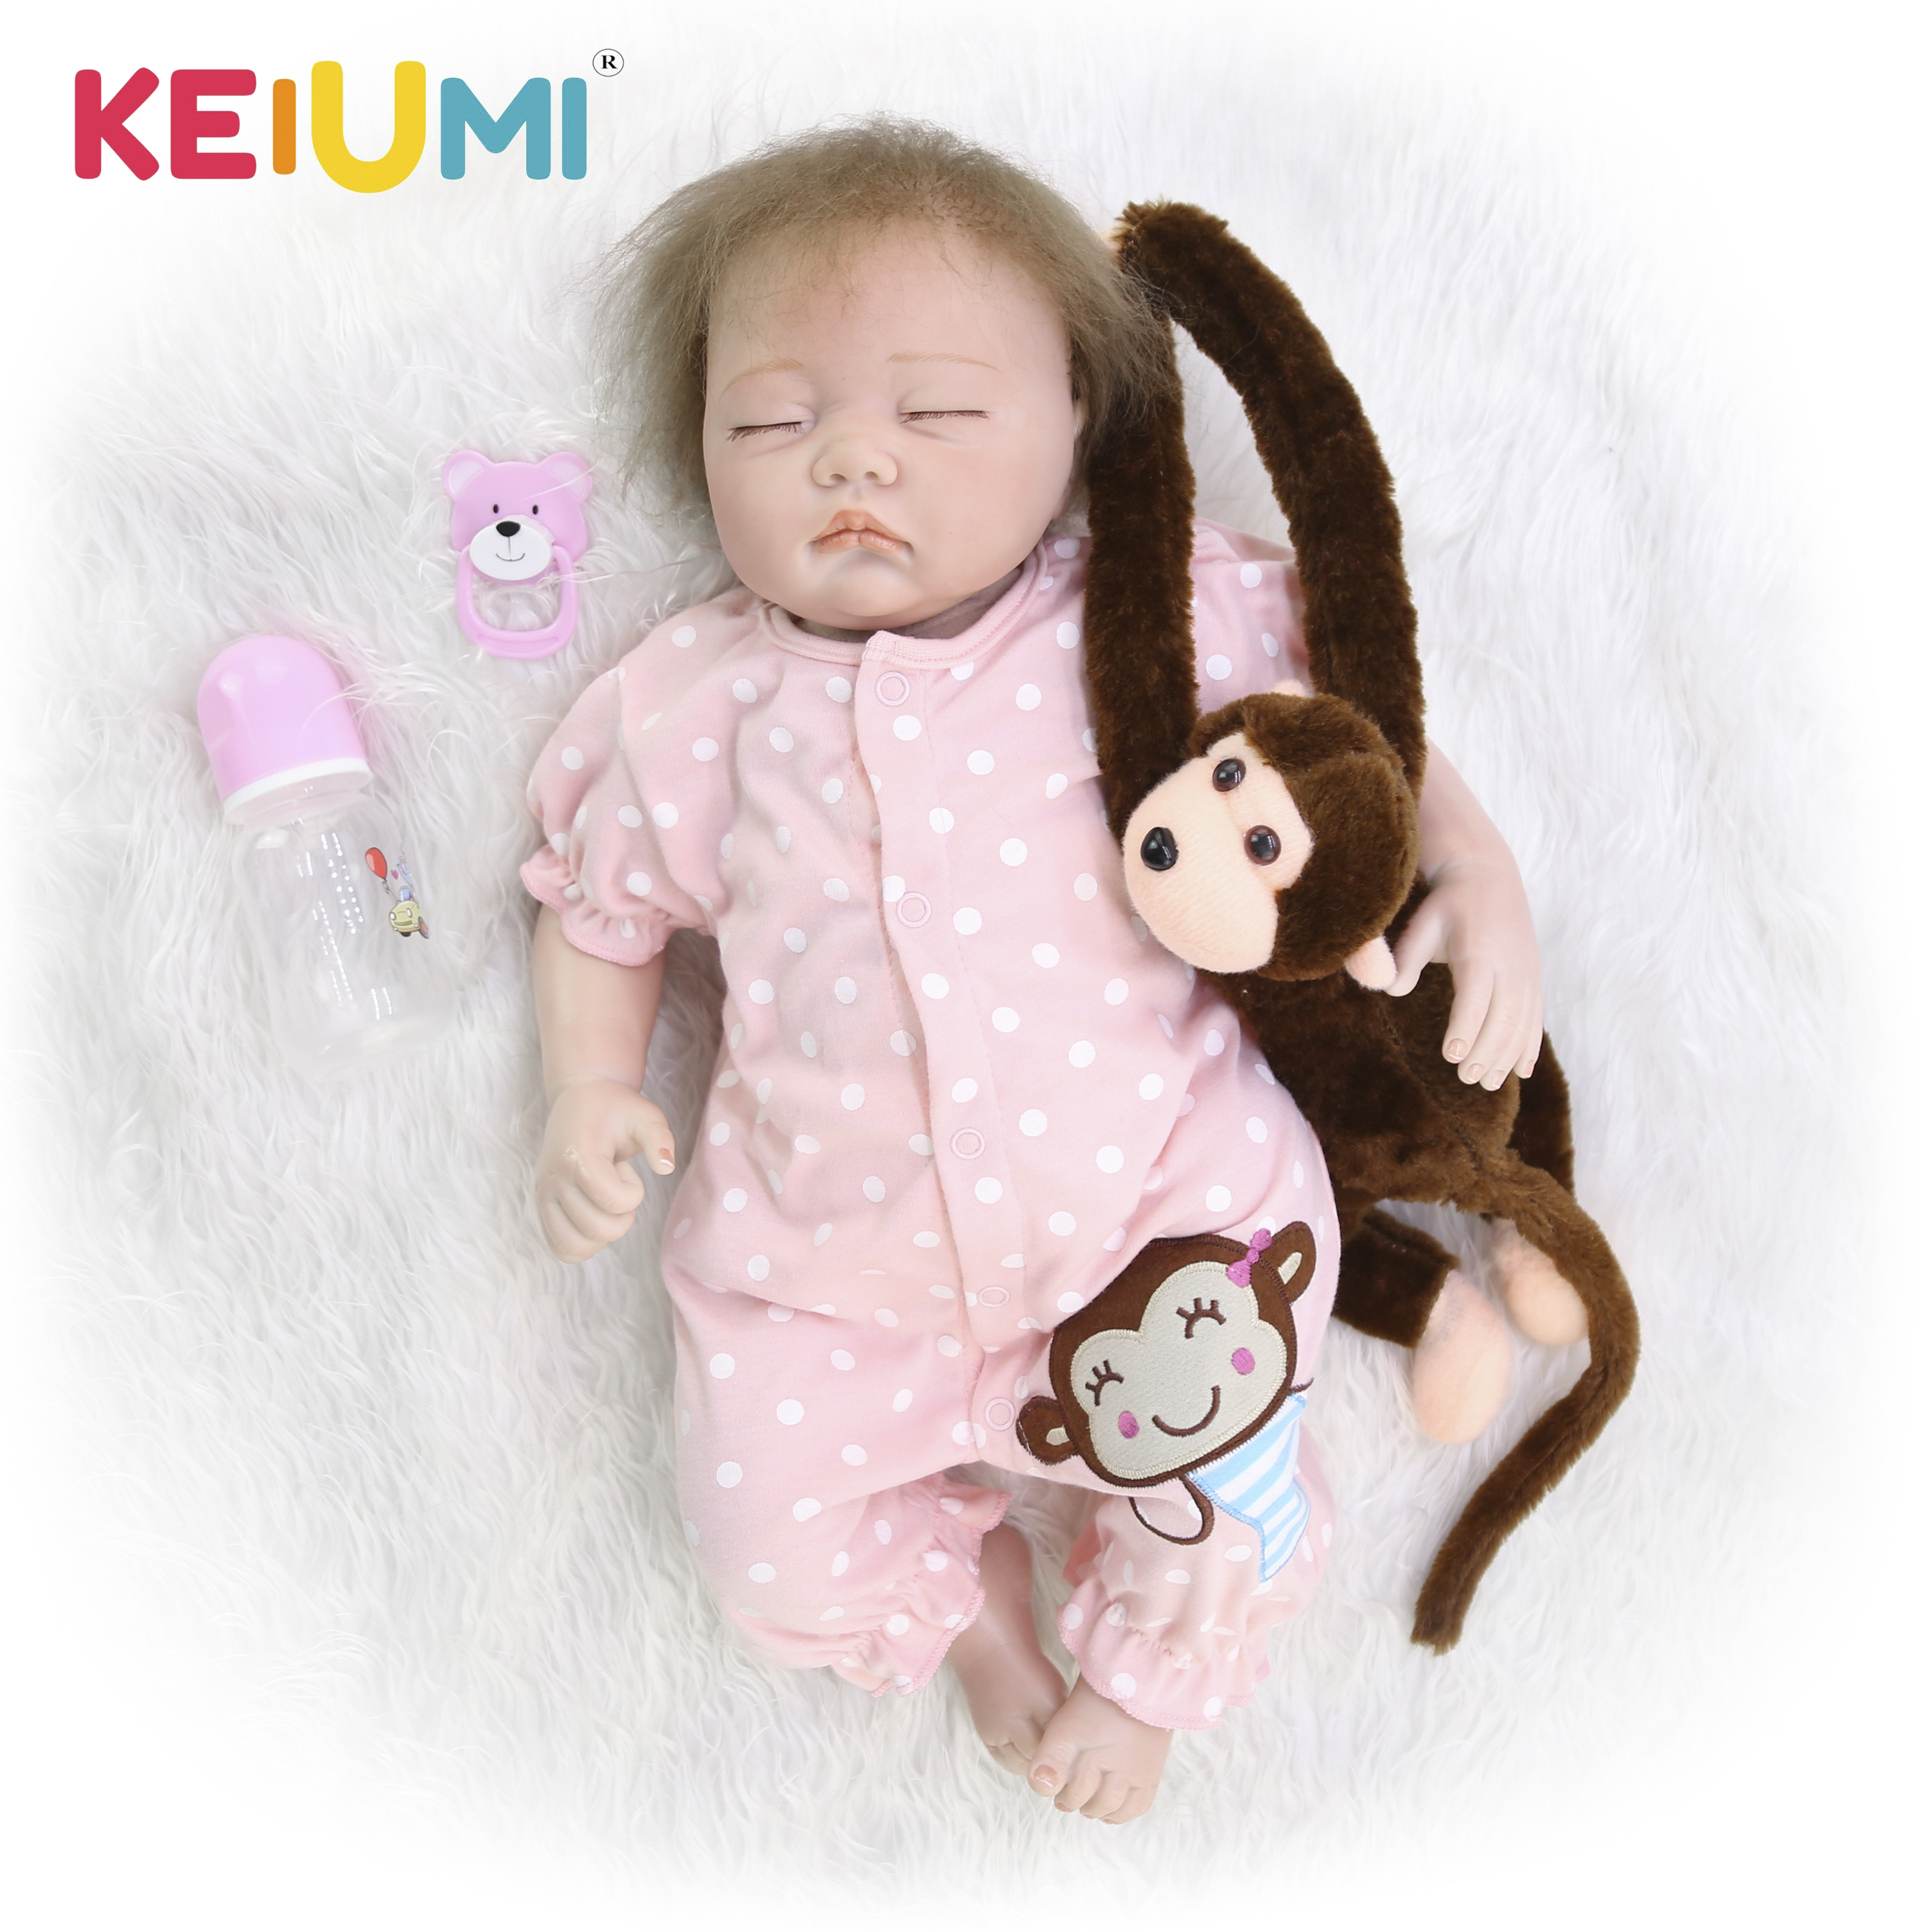 Real Lifelike Reborn Baby Doll 20 Inch Sleeping Princess Girl Babies Silicone Newborn Doll Toy With Curved Mohair Kids Playmate-in Muñecas from Juguetes y pasatiempos    1